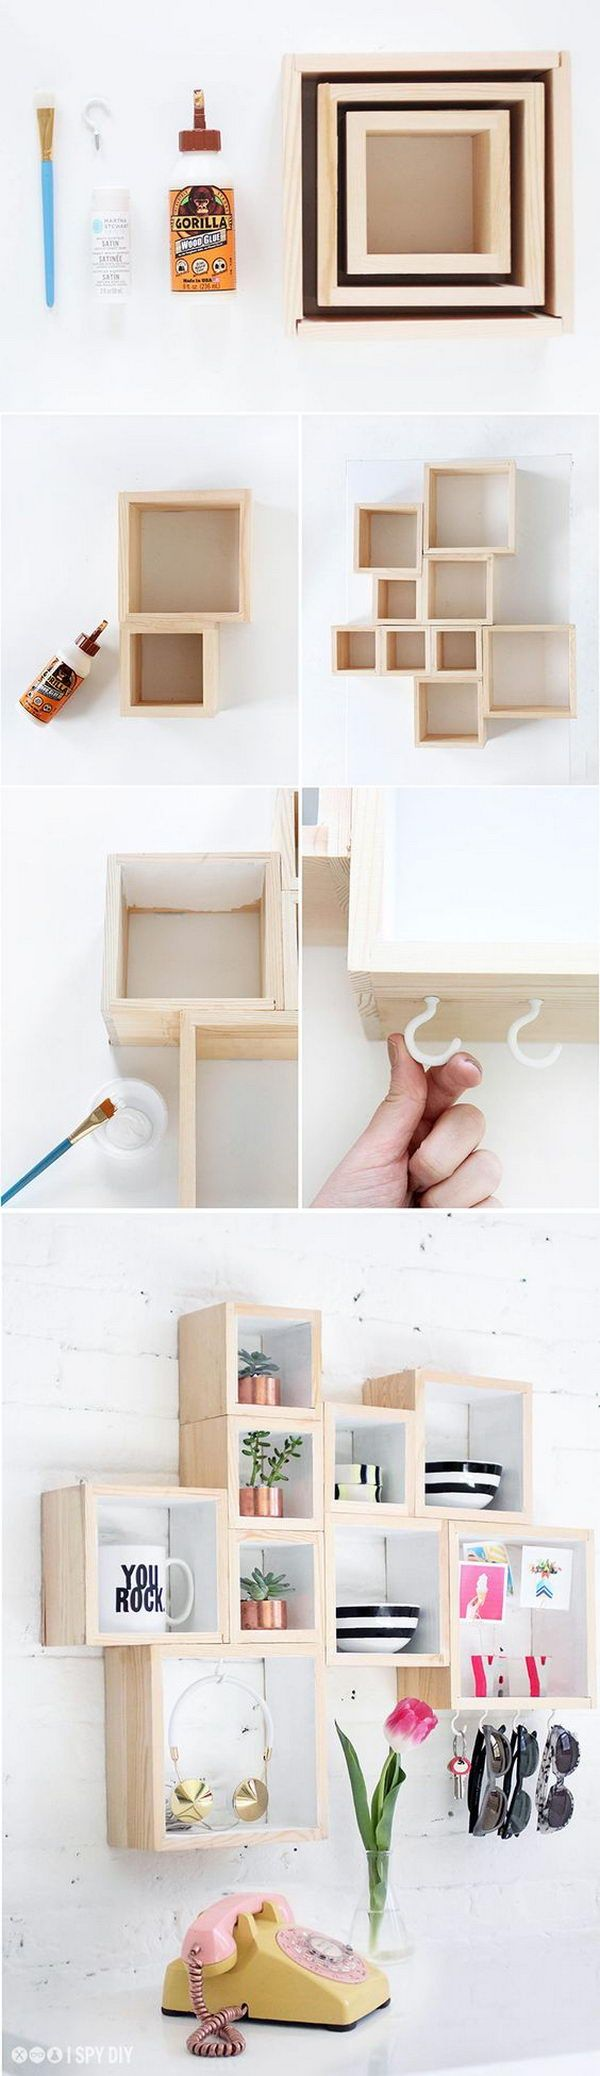 Easy Weekend DIY Projects For Home Decoration in 2018   projects to ...